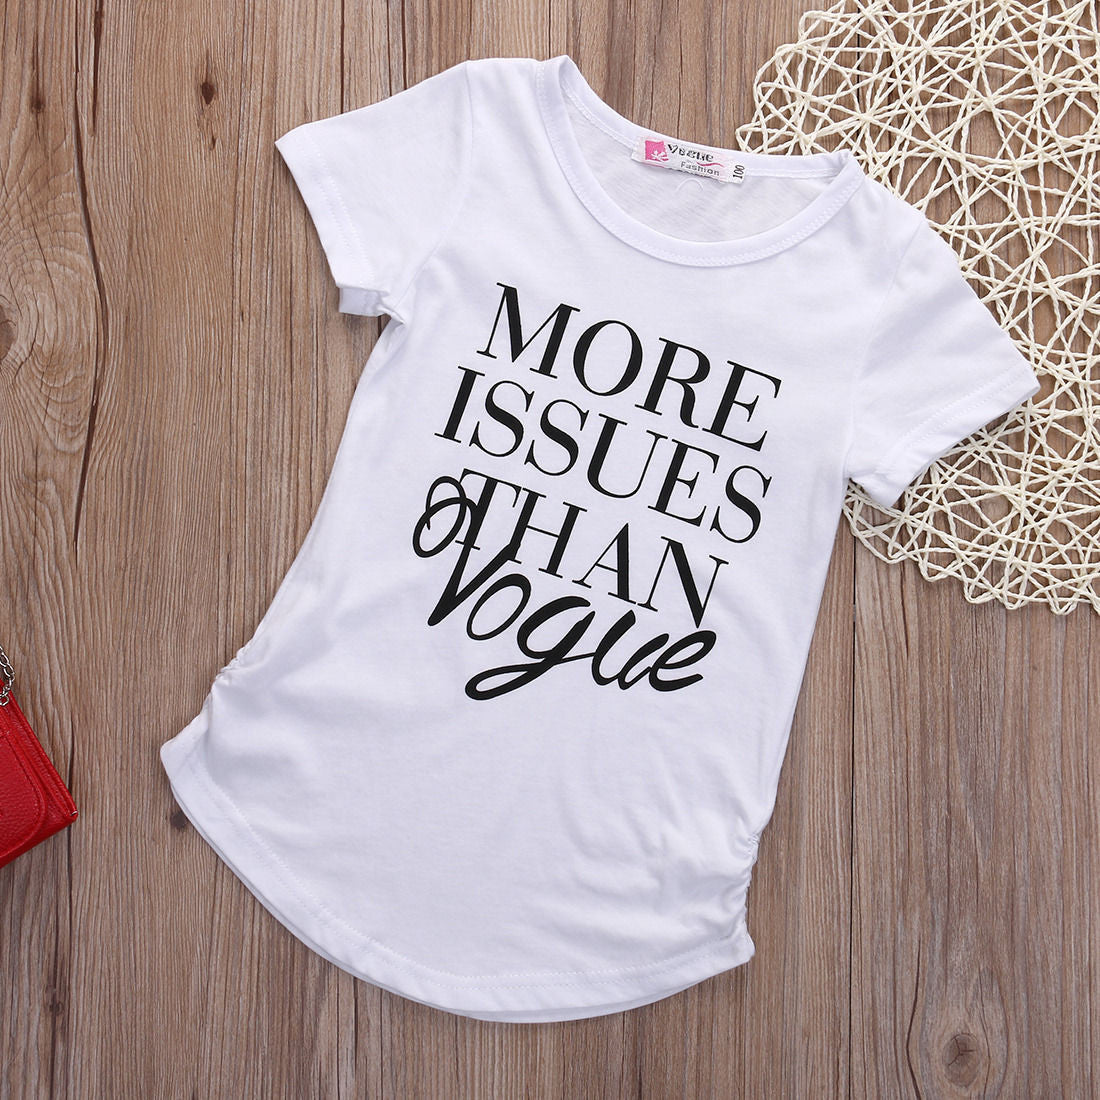 White / 4New Kids Baby Girls Summer Fashion Cotton Short sleeve T-shirt Tops Clothes